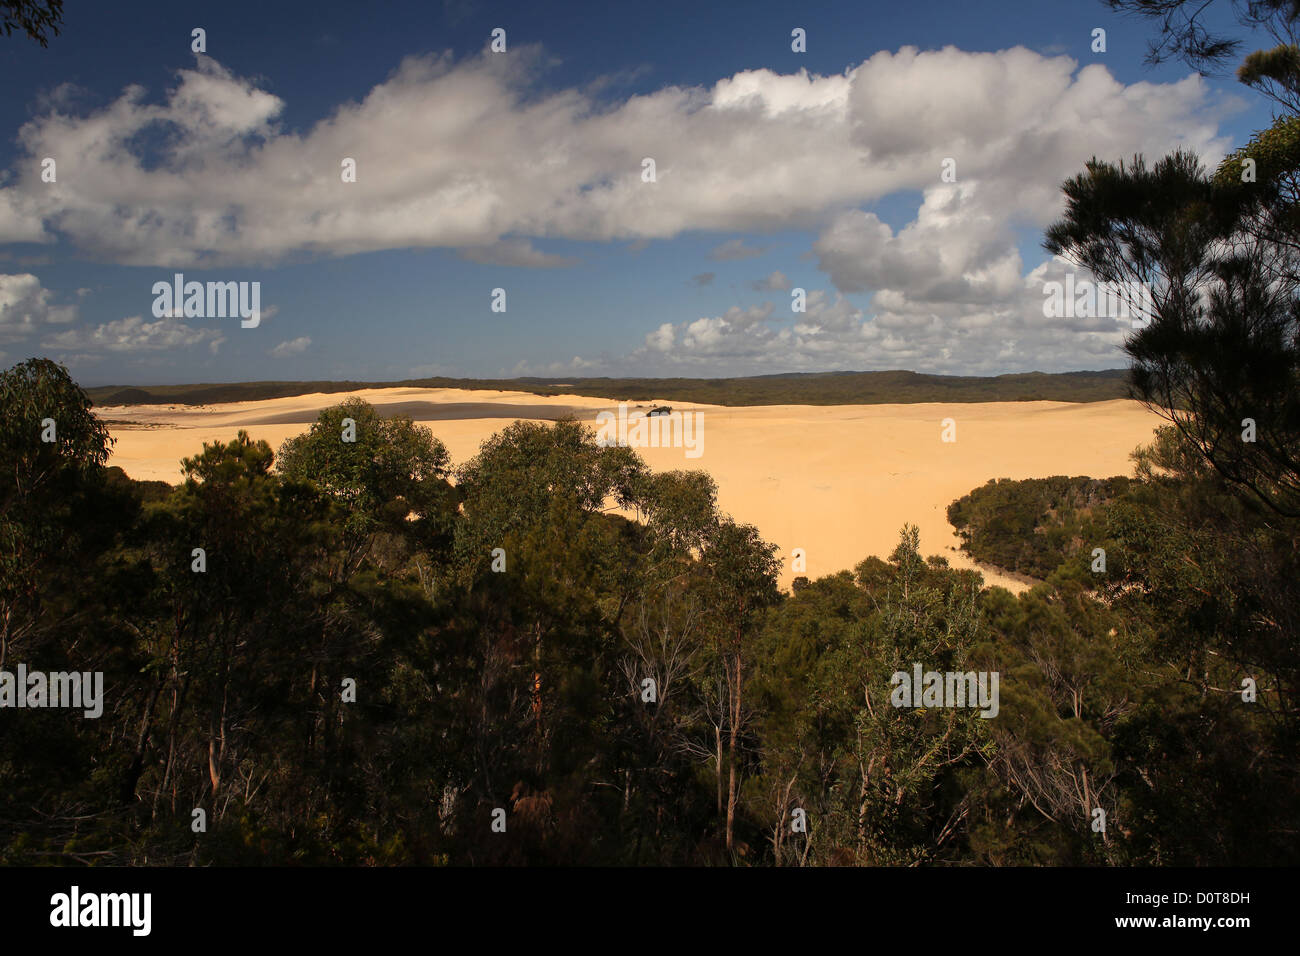 Sand dune, Sandblow, dune, sand, island, primeval forest, trees, Fraser Island, Queensland, Australia, view, edge - Stock Image